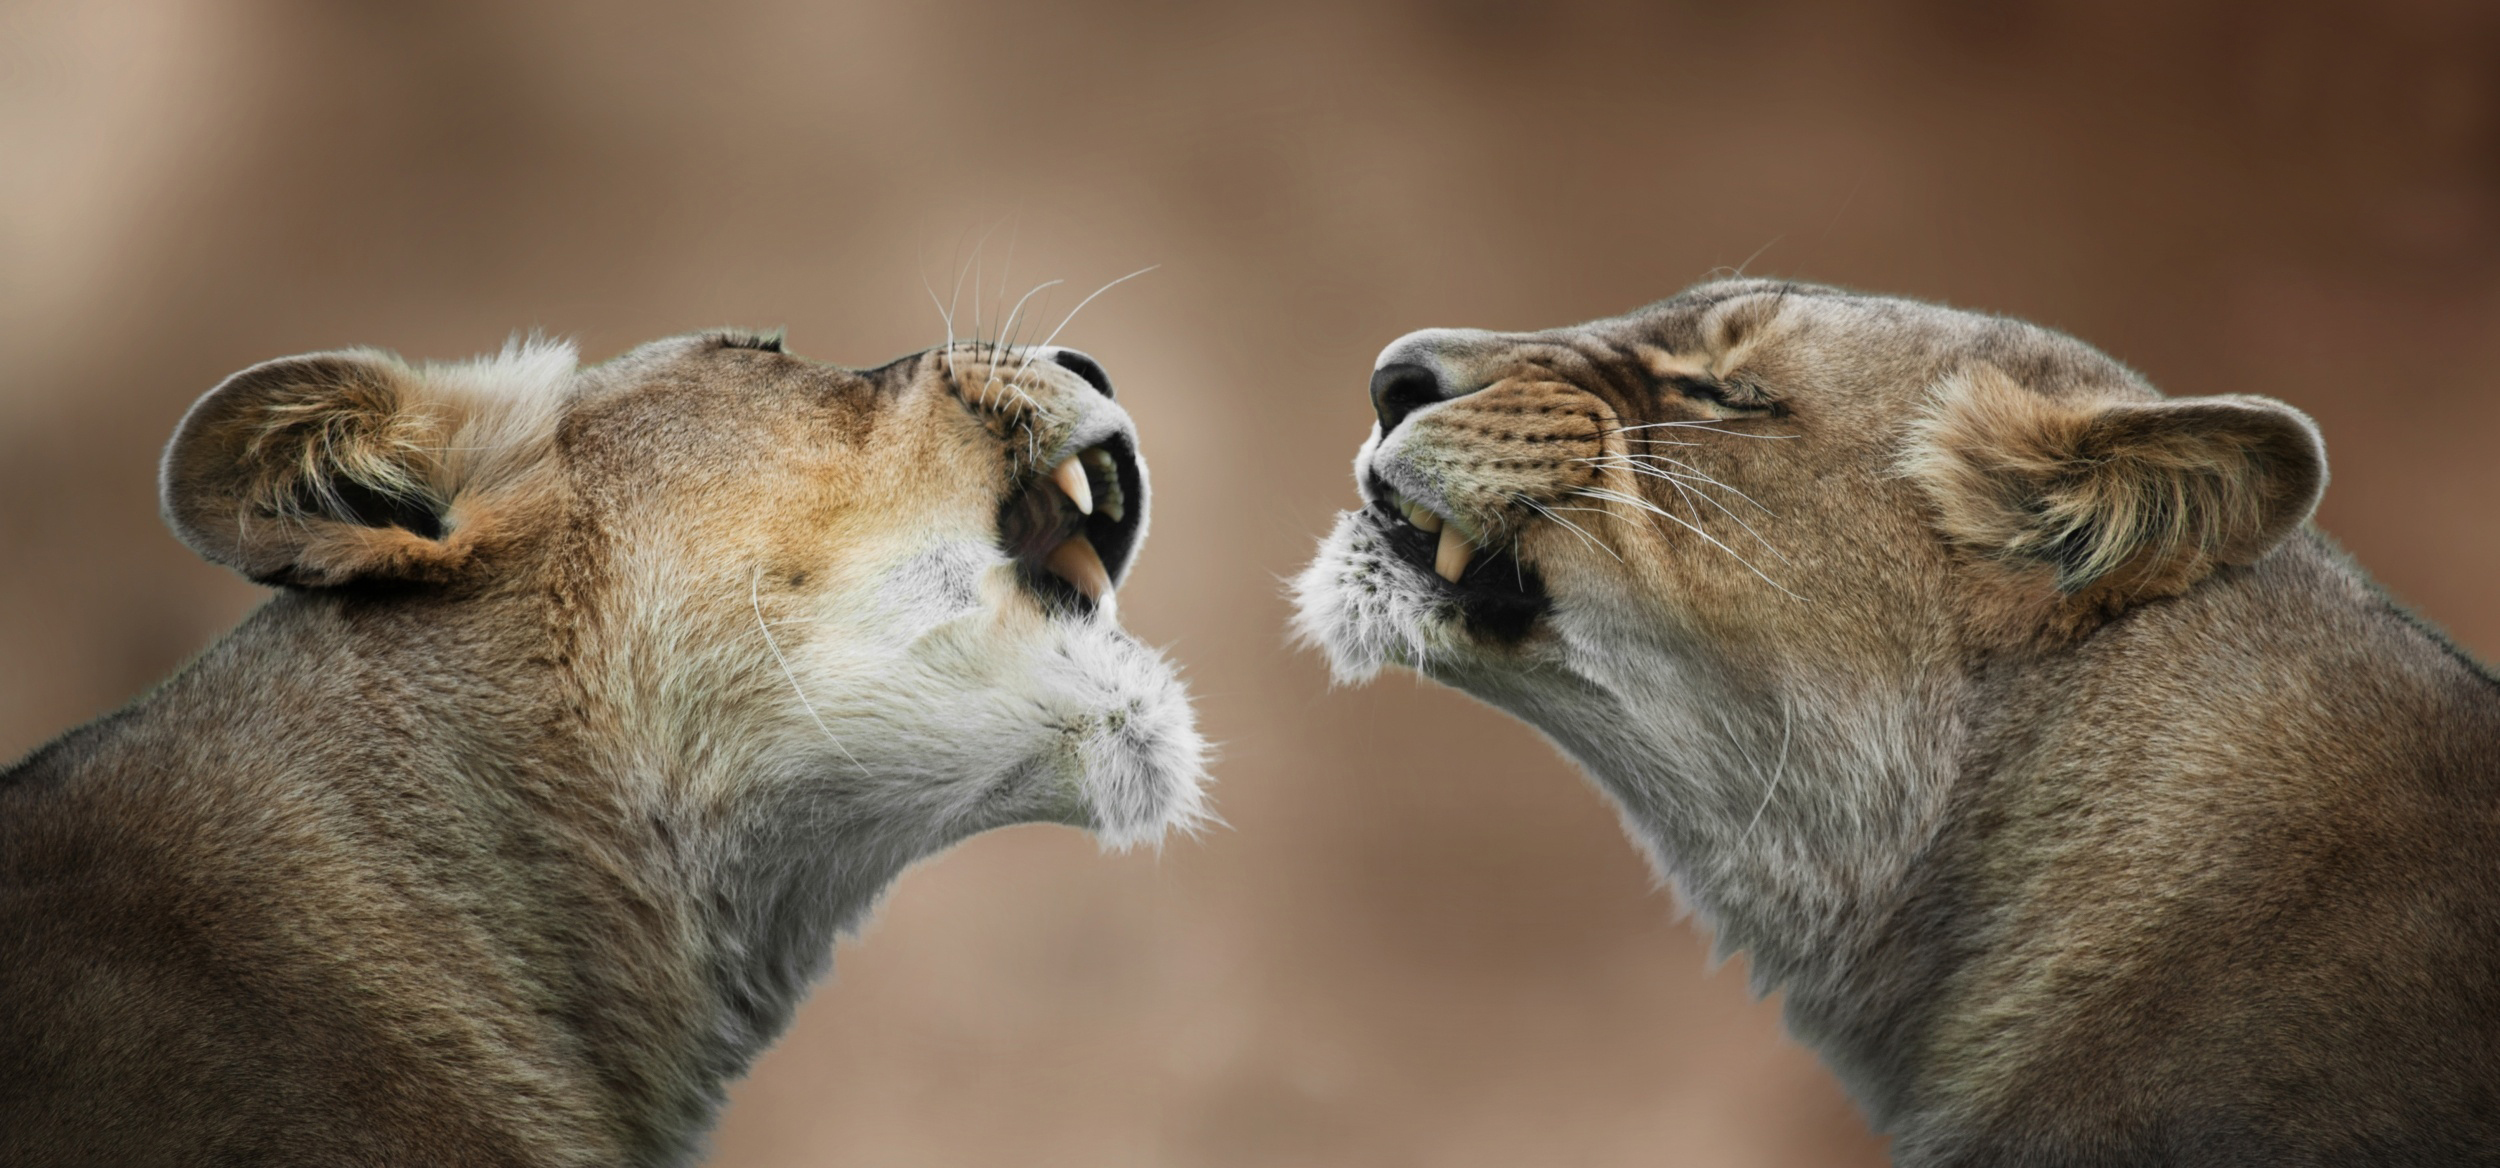 100166 download wallpaper Animals, Lionesses, Lioness, Couple, Pair, Grin, Anger, Predator, Lions screensavers and pictures for free